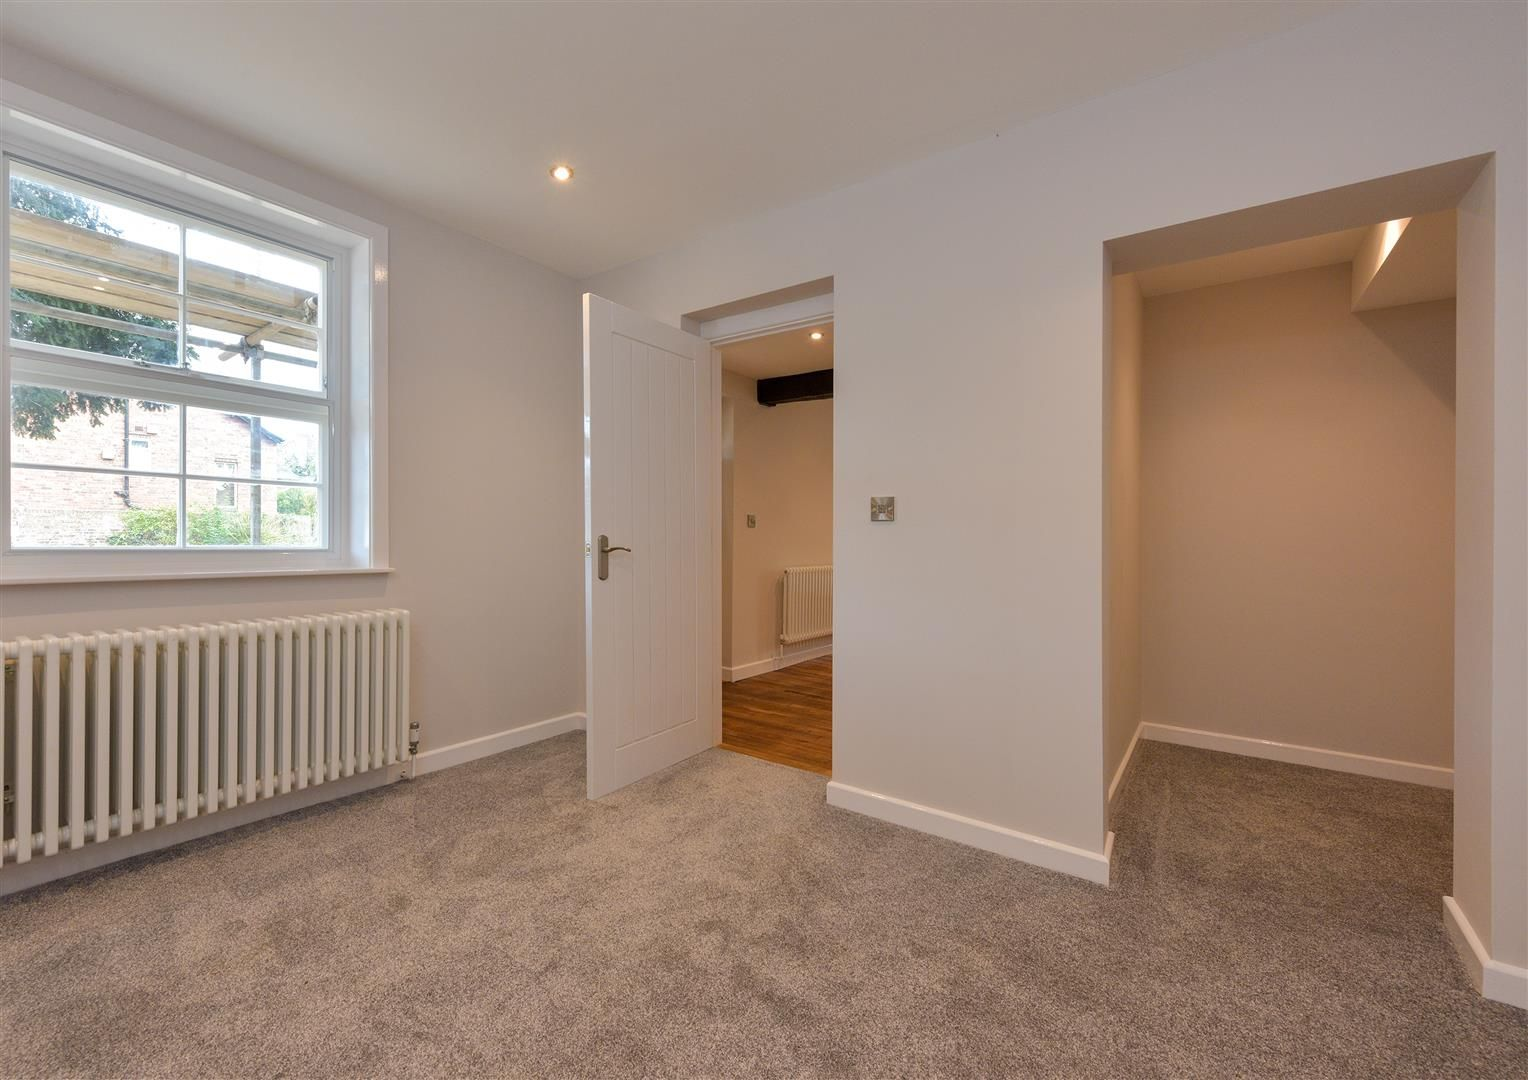 2 bed apartment for sale 14